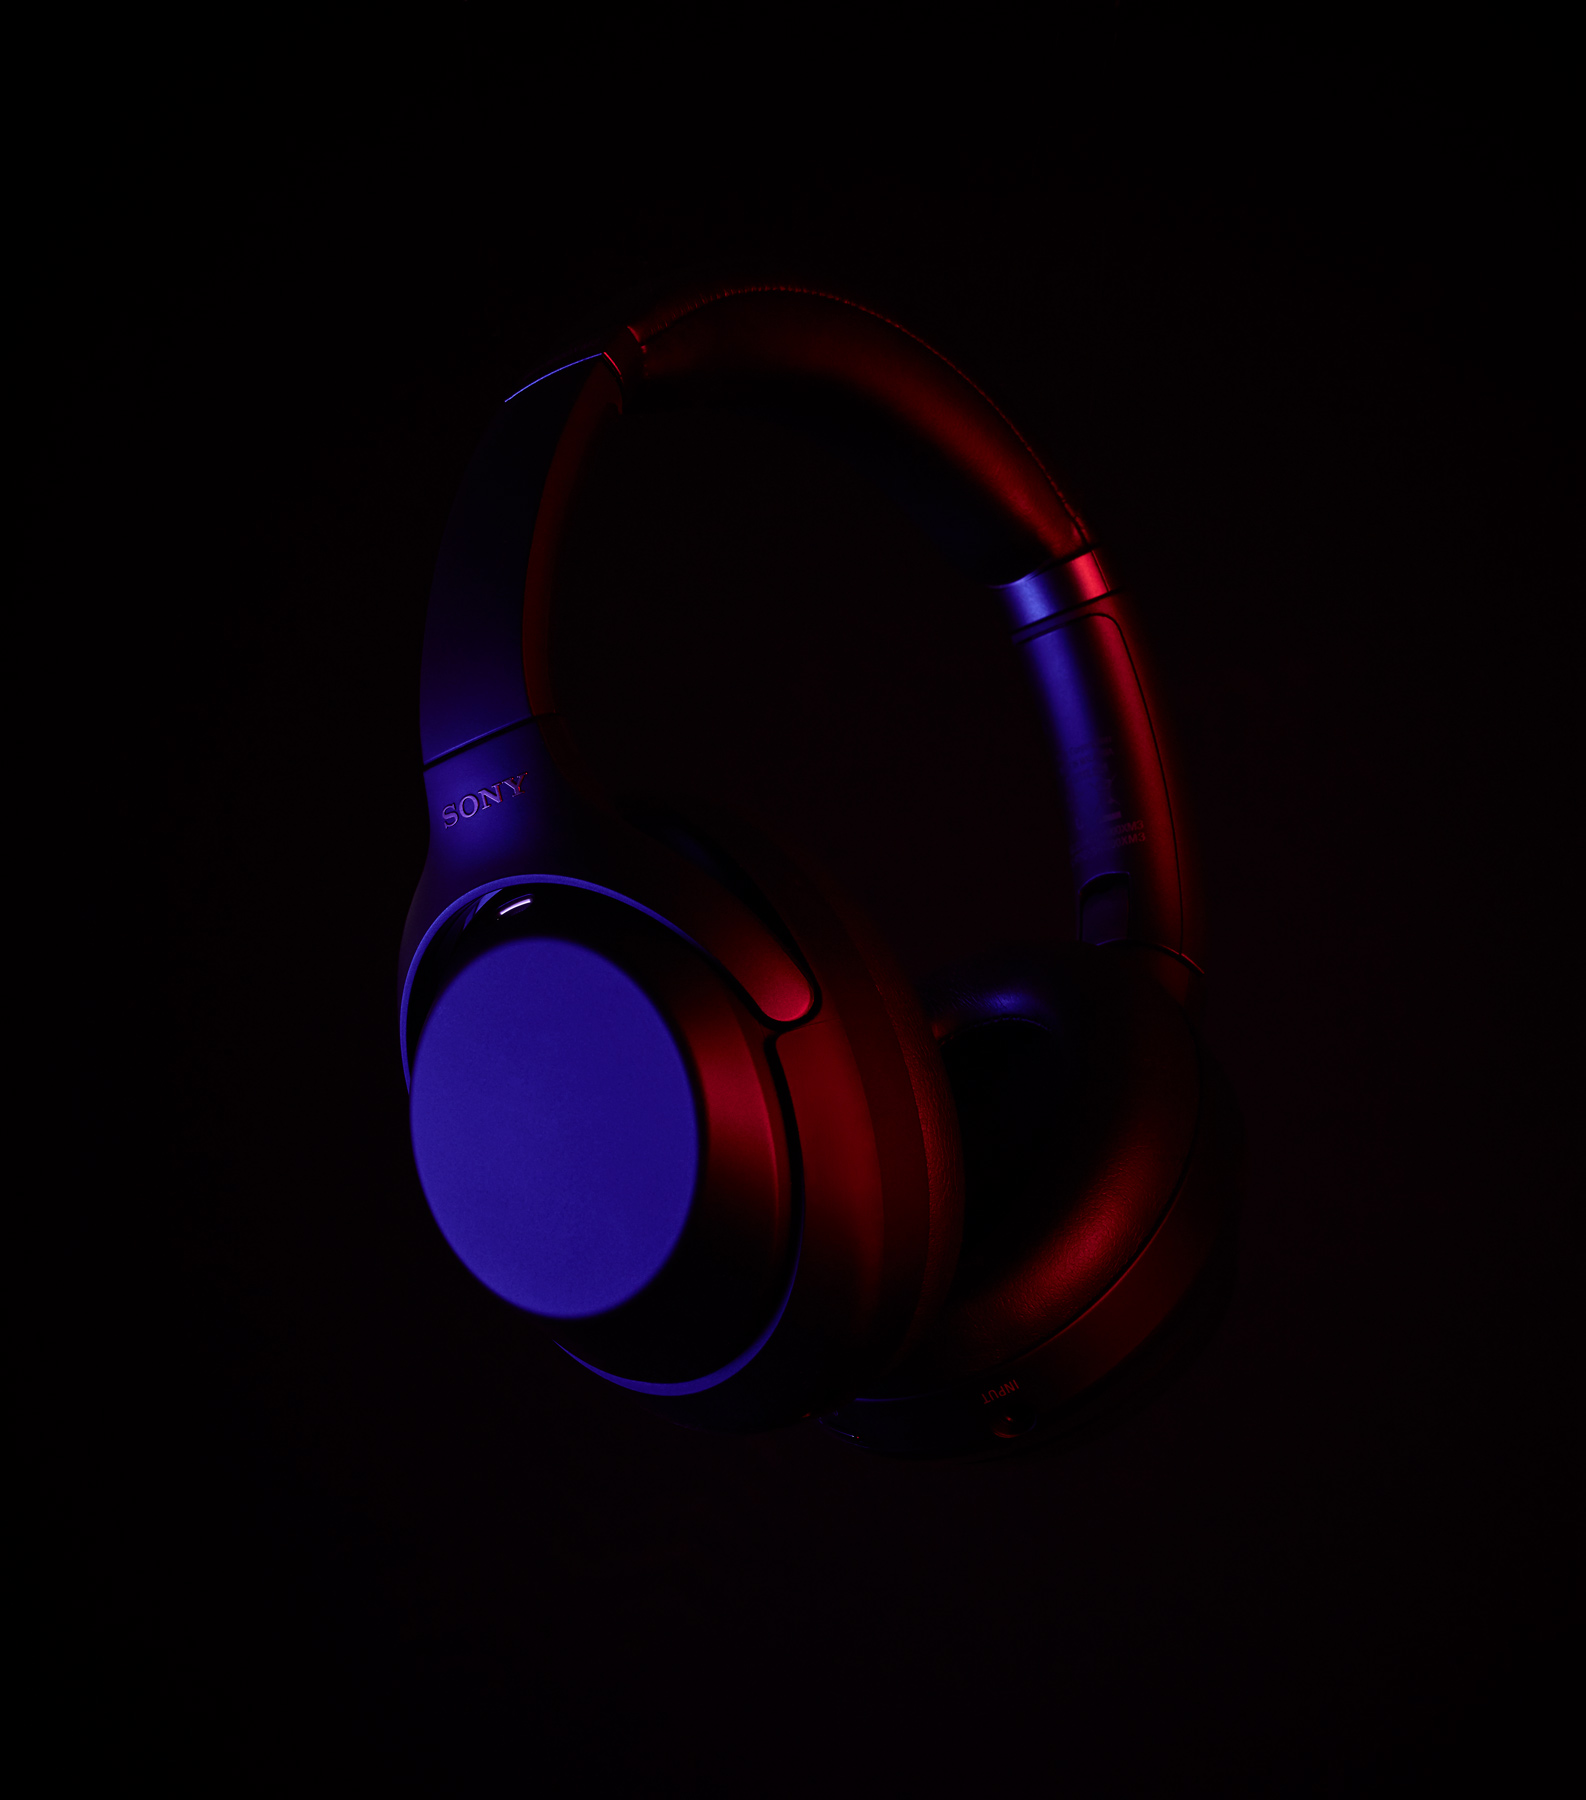 Sony_headphones-2jpg